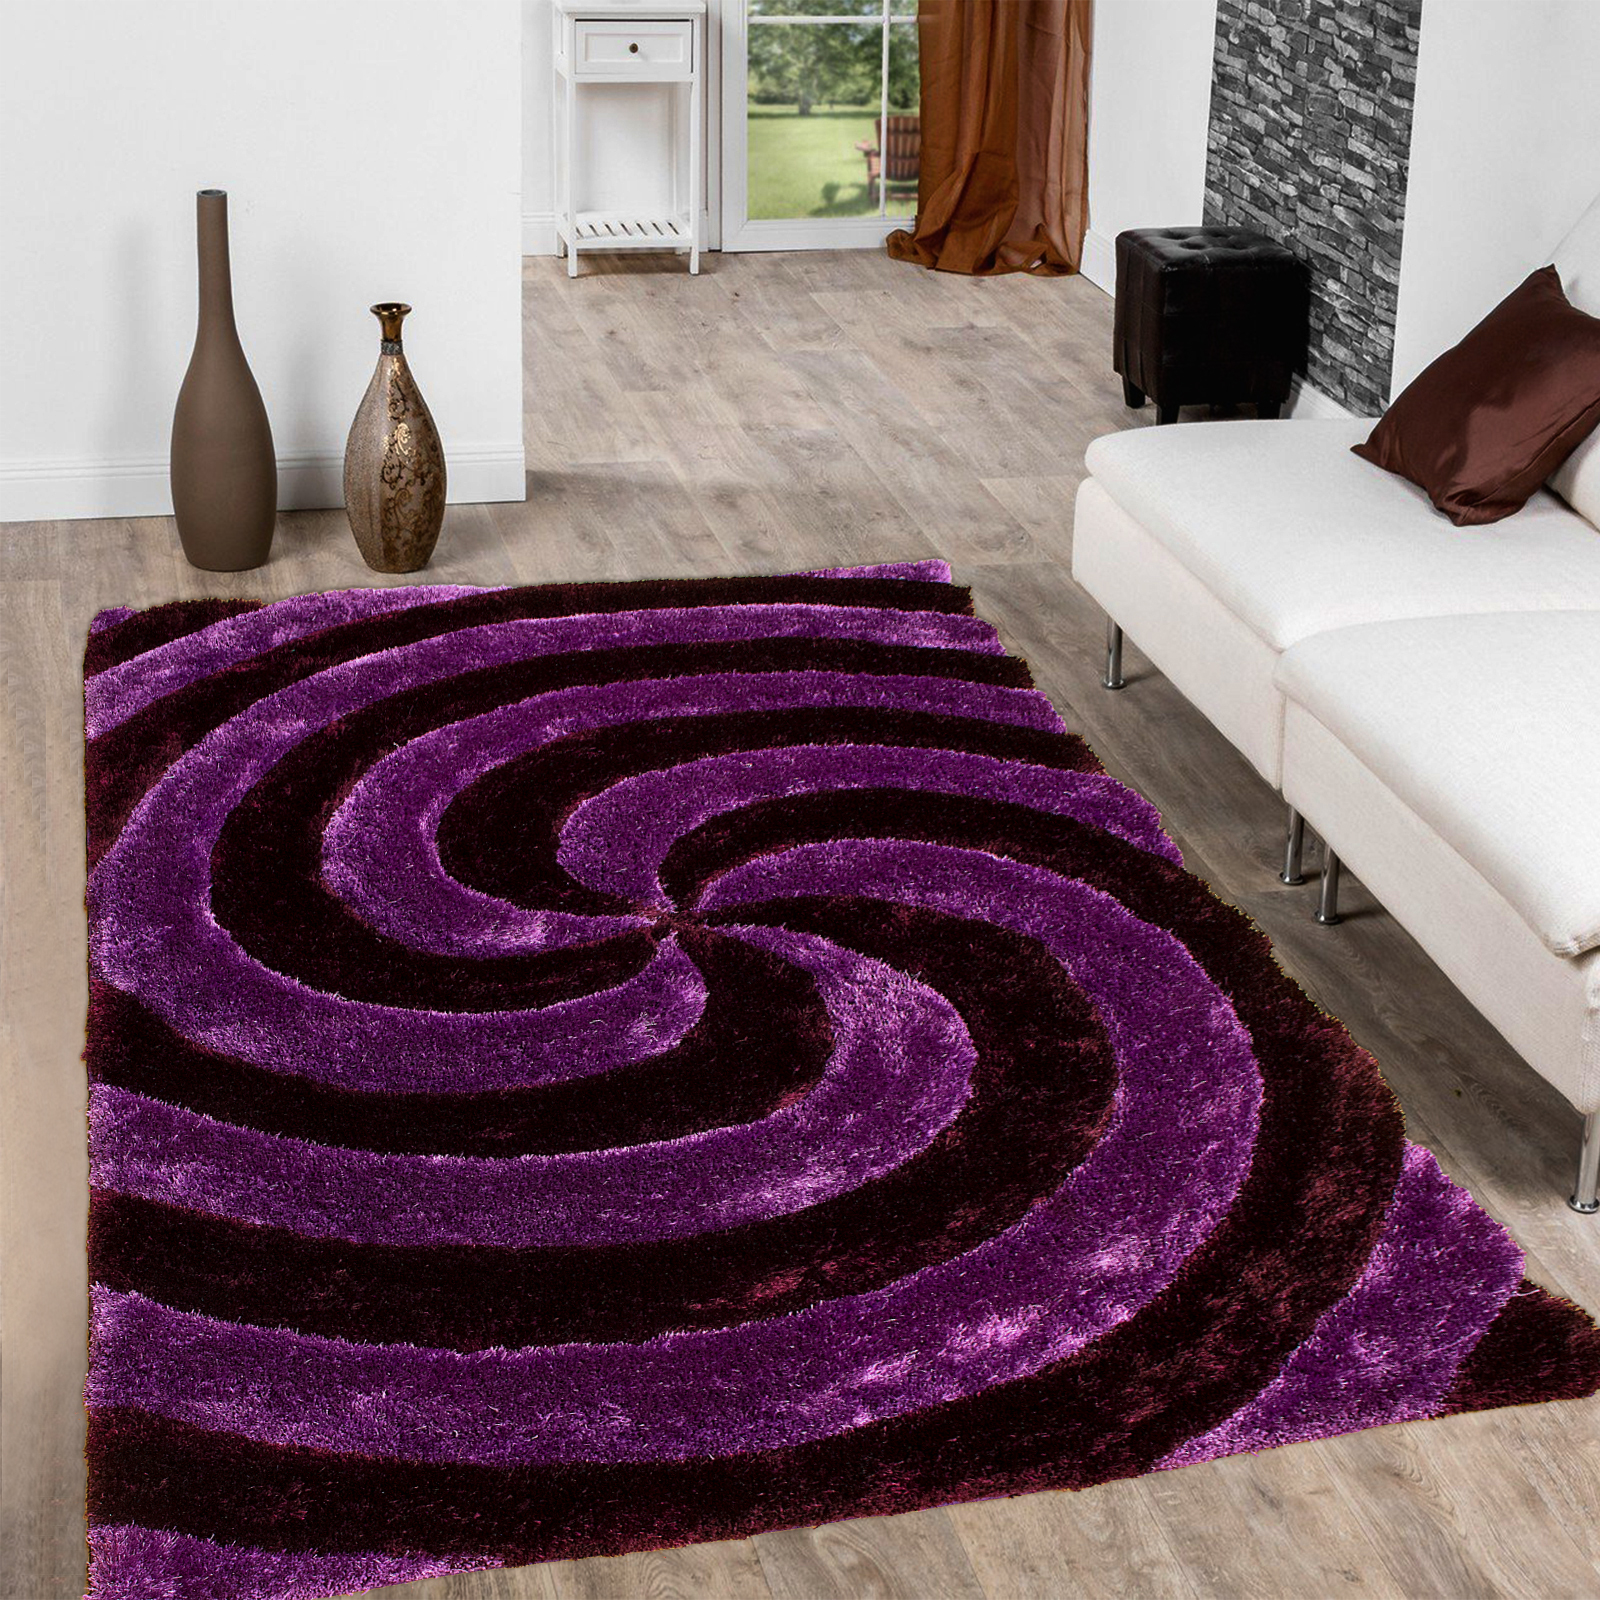 Allstar Purple Shaggy Area Rug With 3d Purple Spiral Design Contemporary Formal Casual Hand Tufted 7 6 X 10 5 Walmart Com Walmart Com